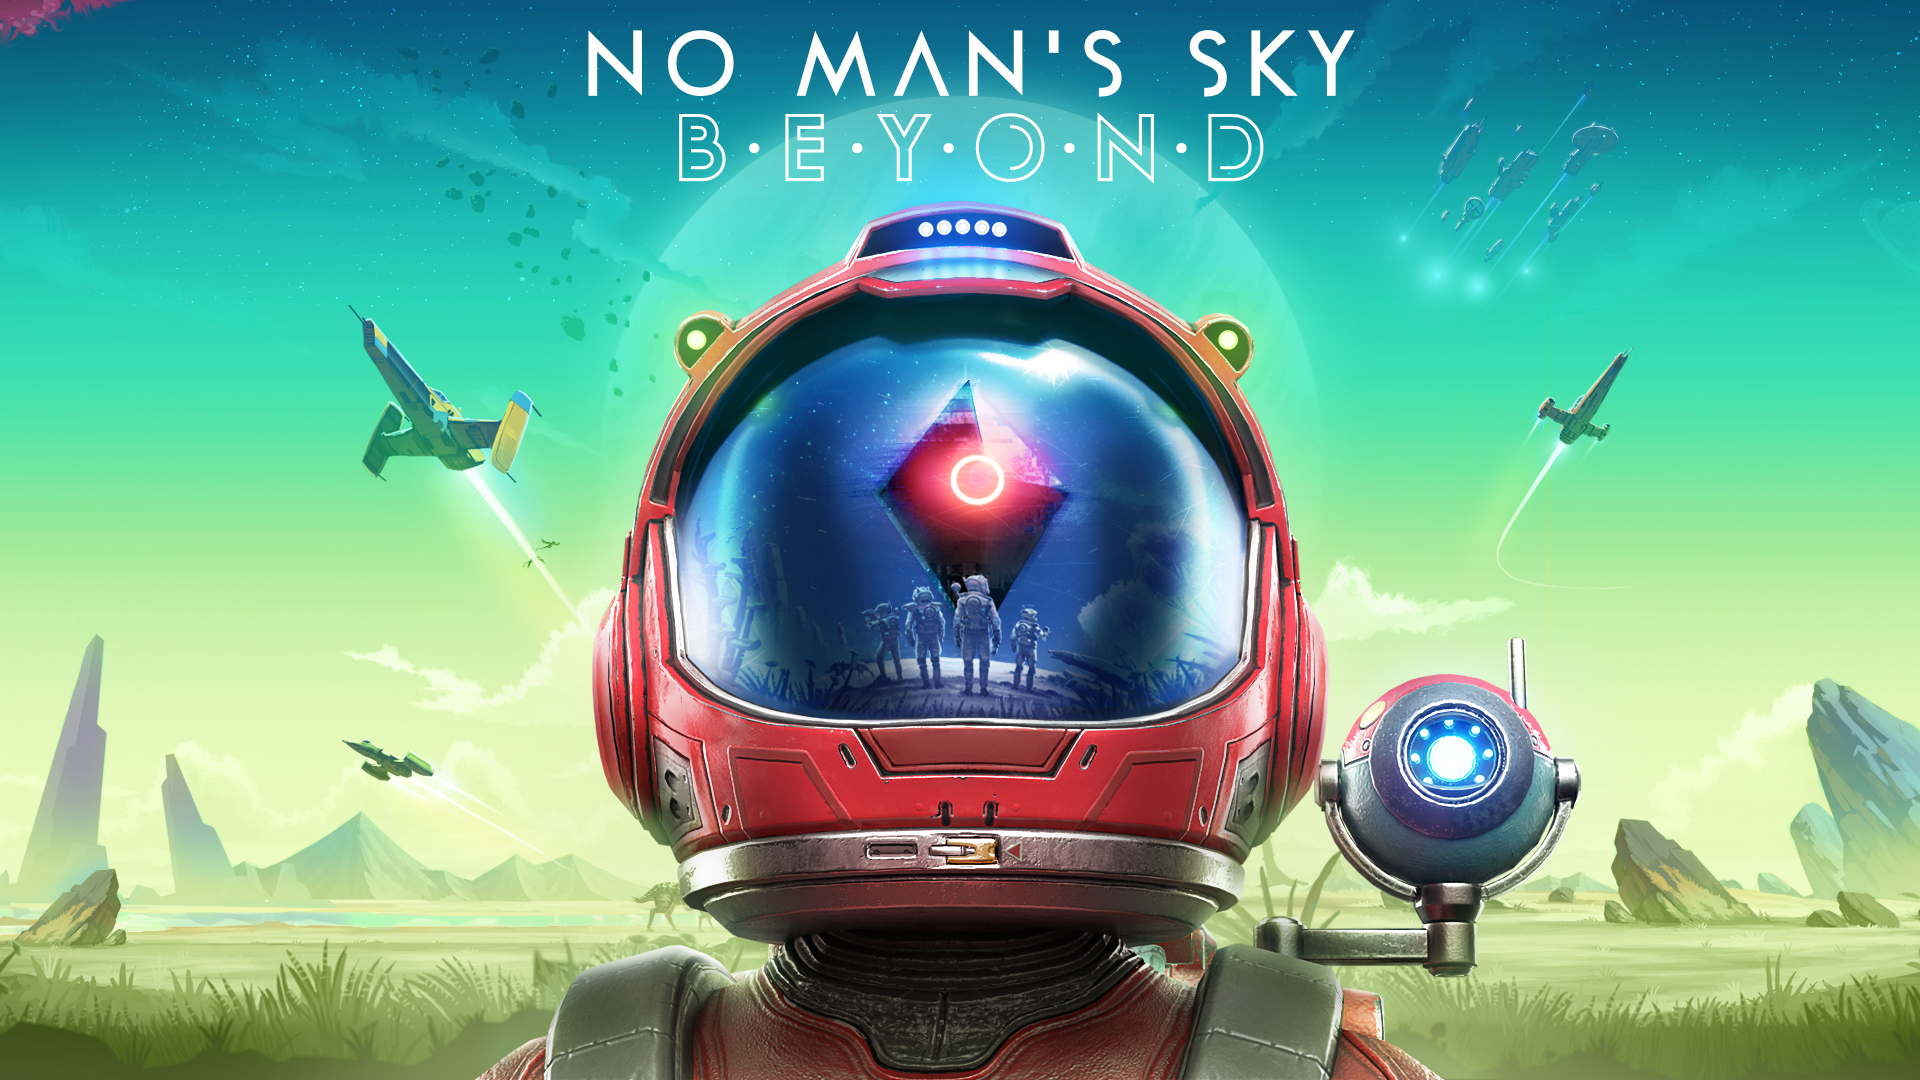 No Man's Sky Beyond is No Man's Sky 2 in all but name